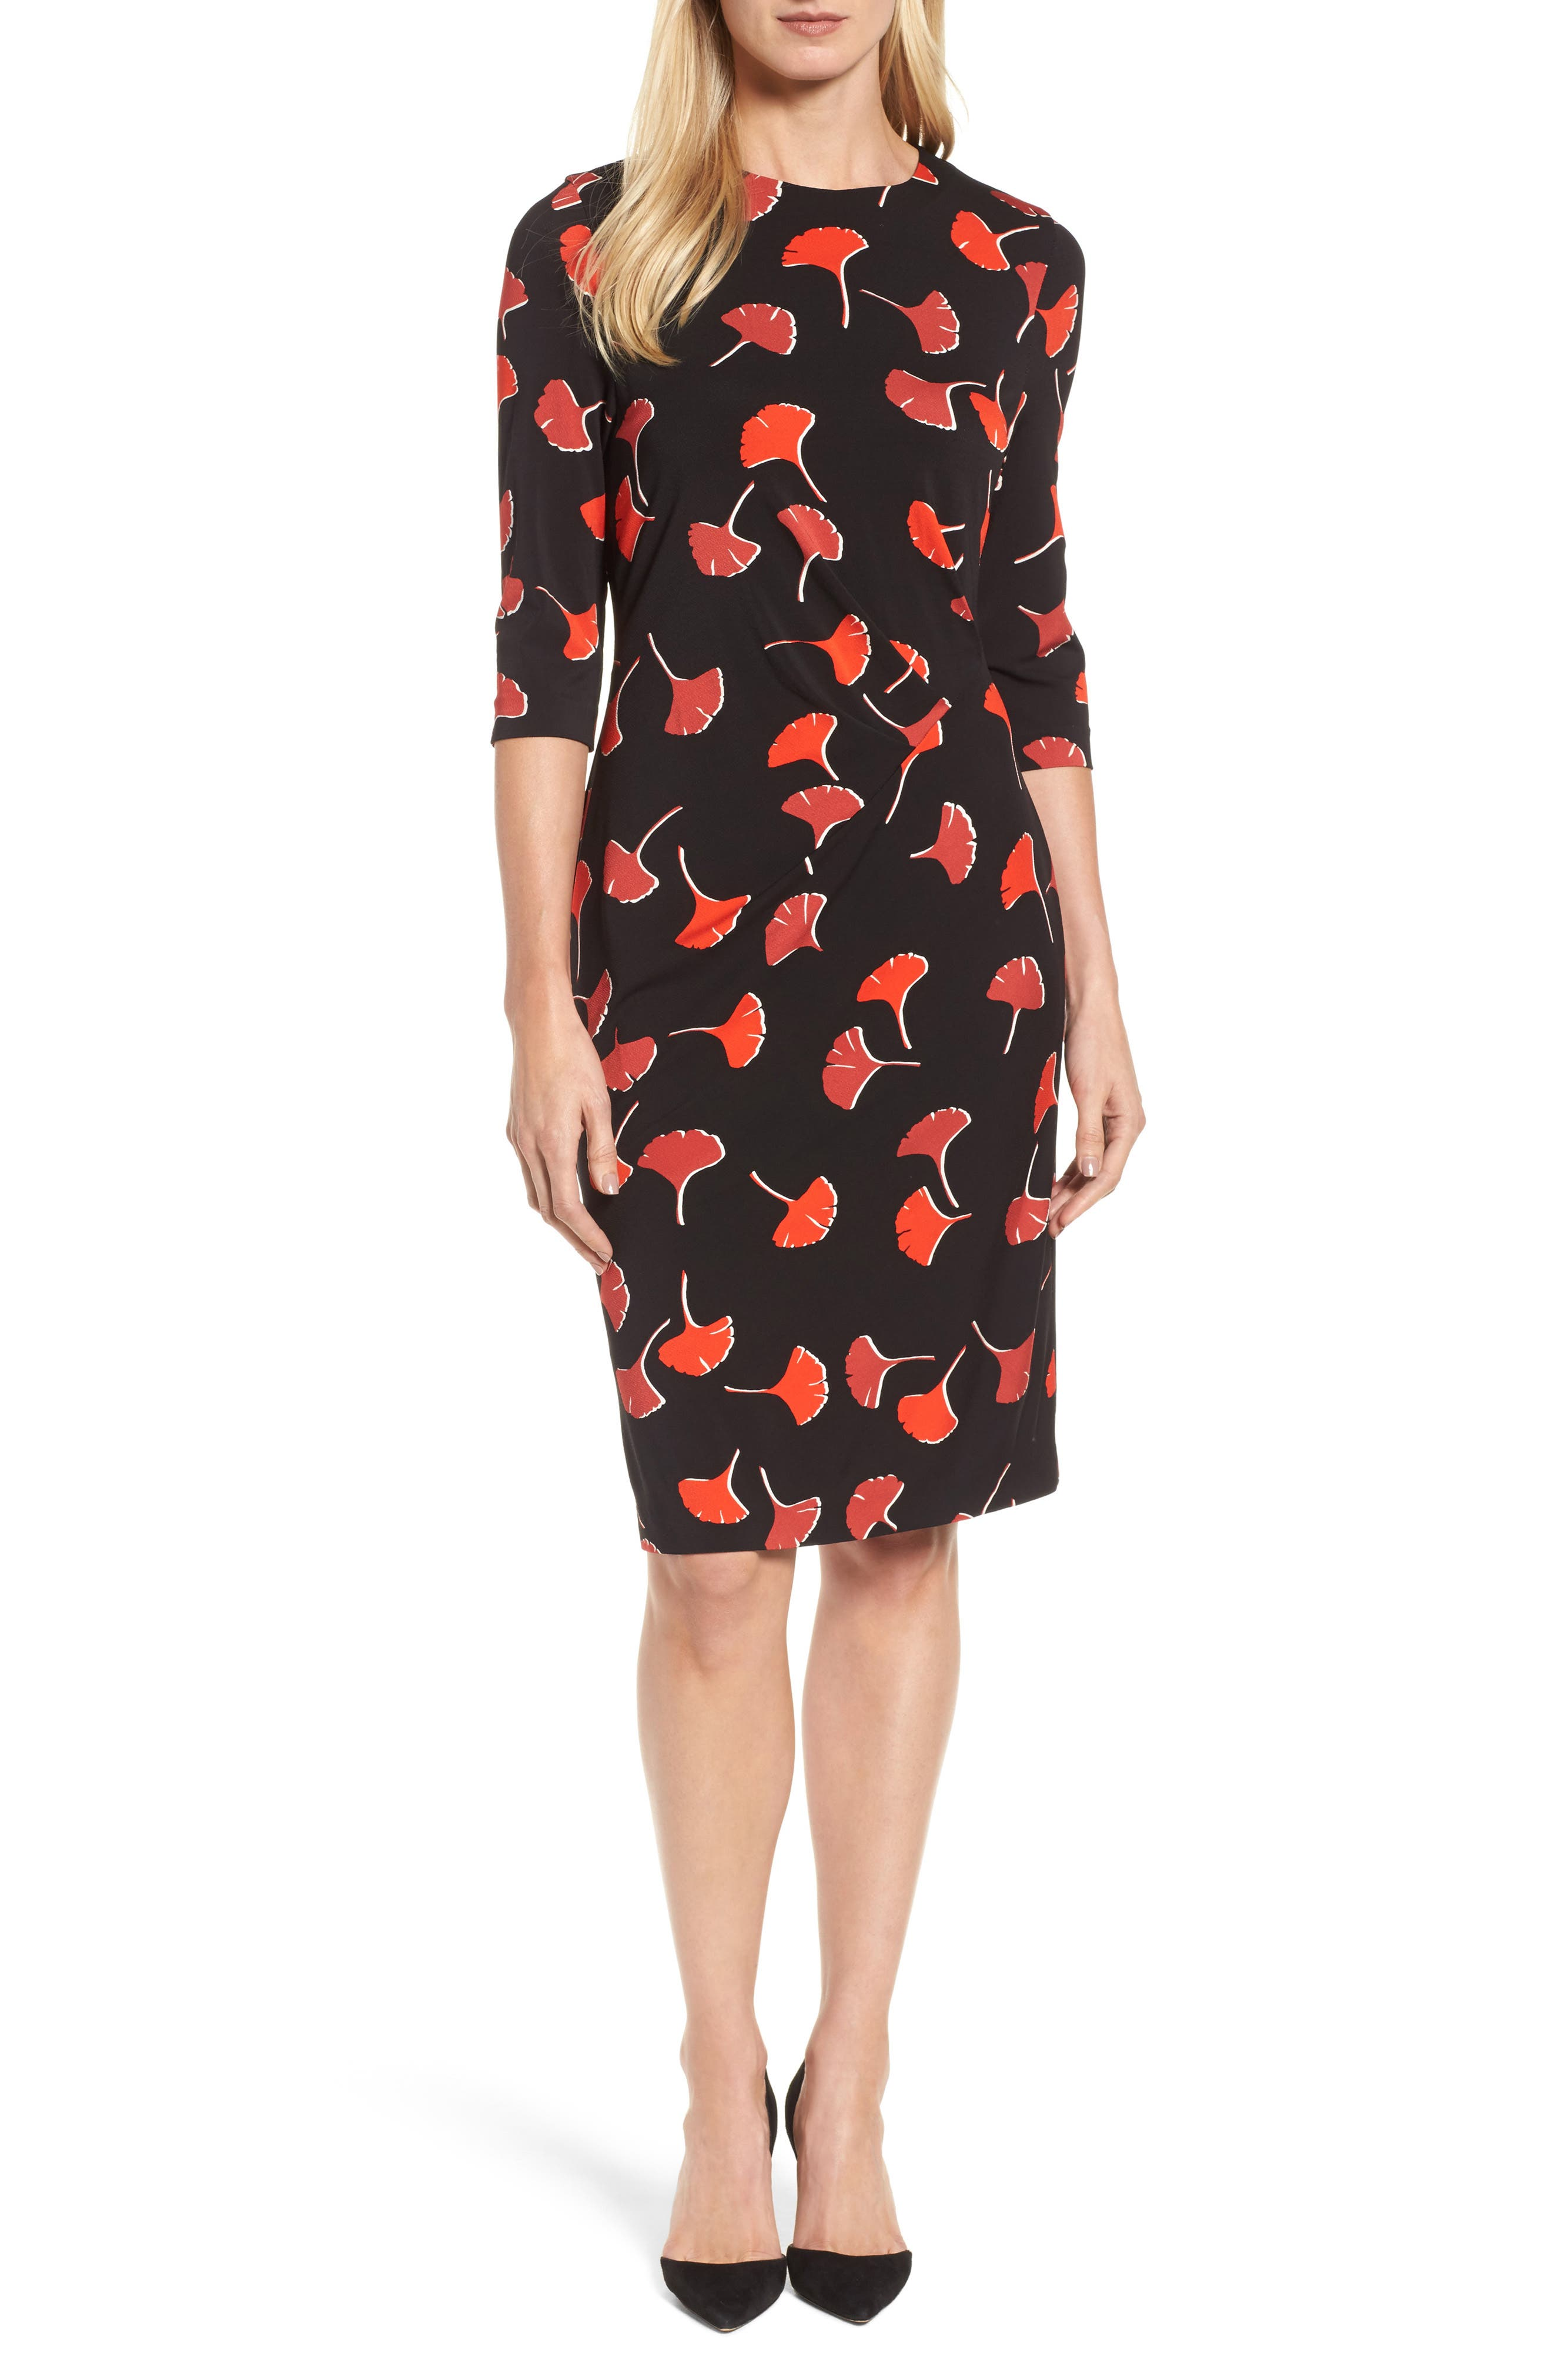 Eseona Print Sheath Dress,                         Main,                         color, 005